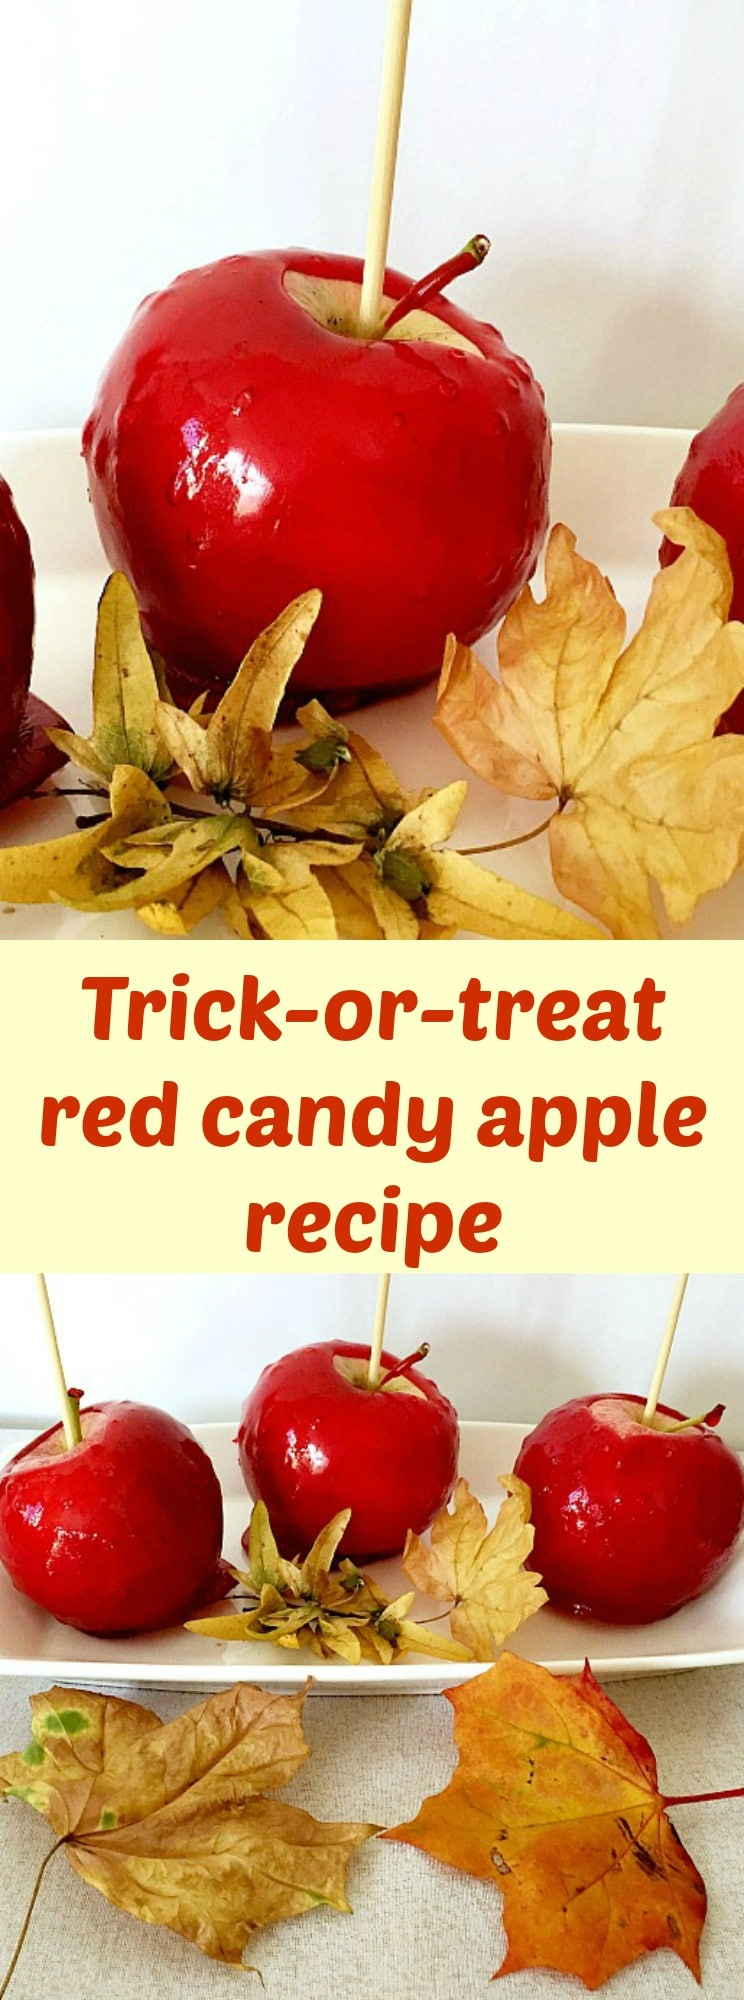 Trick-or-treat red candy apple recipe, perfect for the Halloween treat bag. Kids' favourite candy apples.